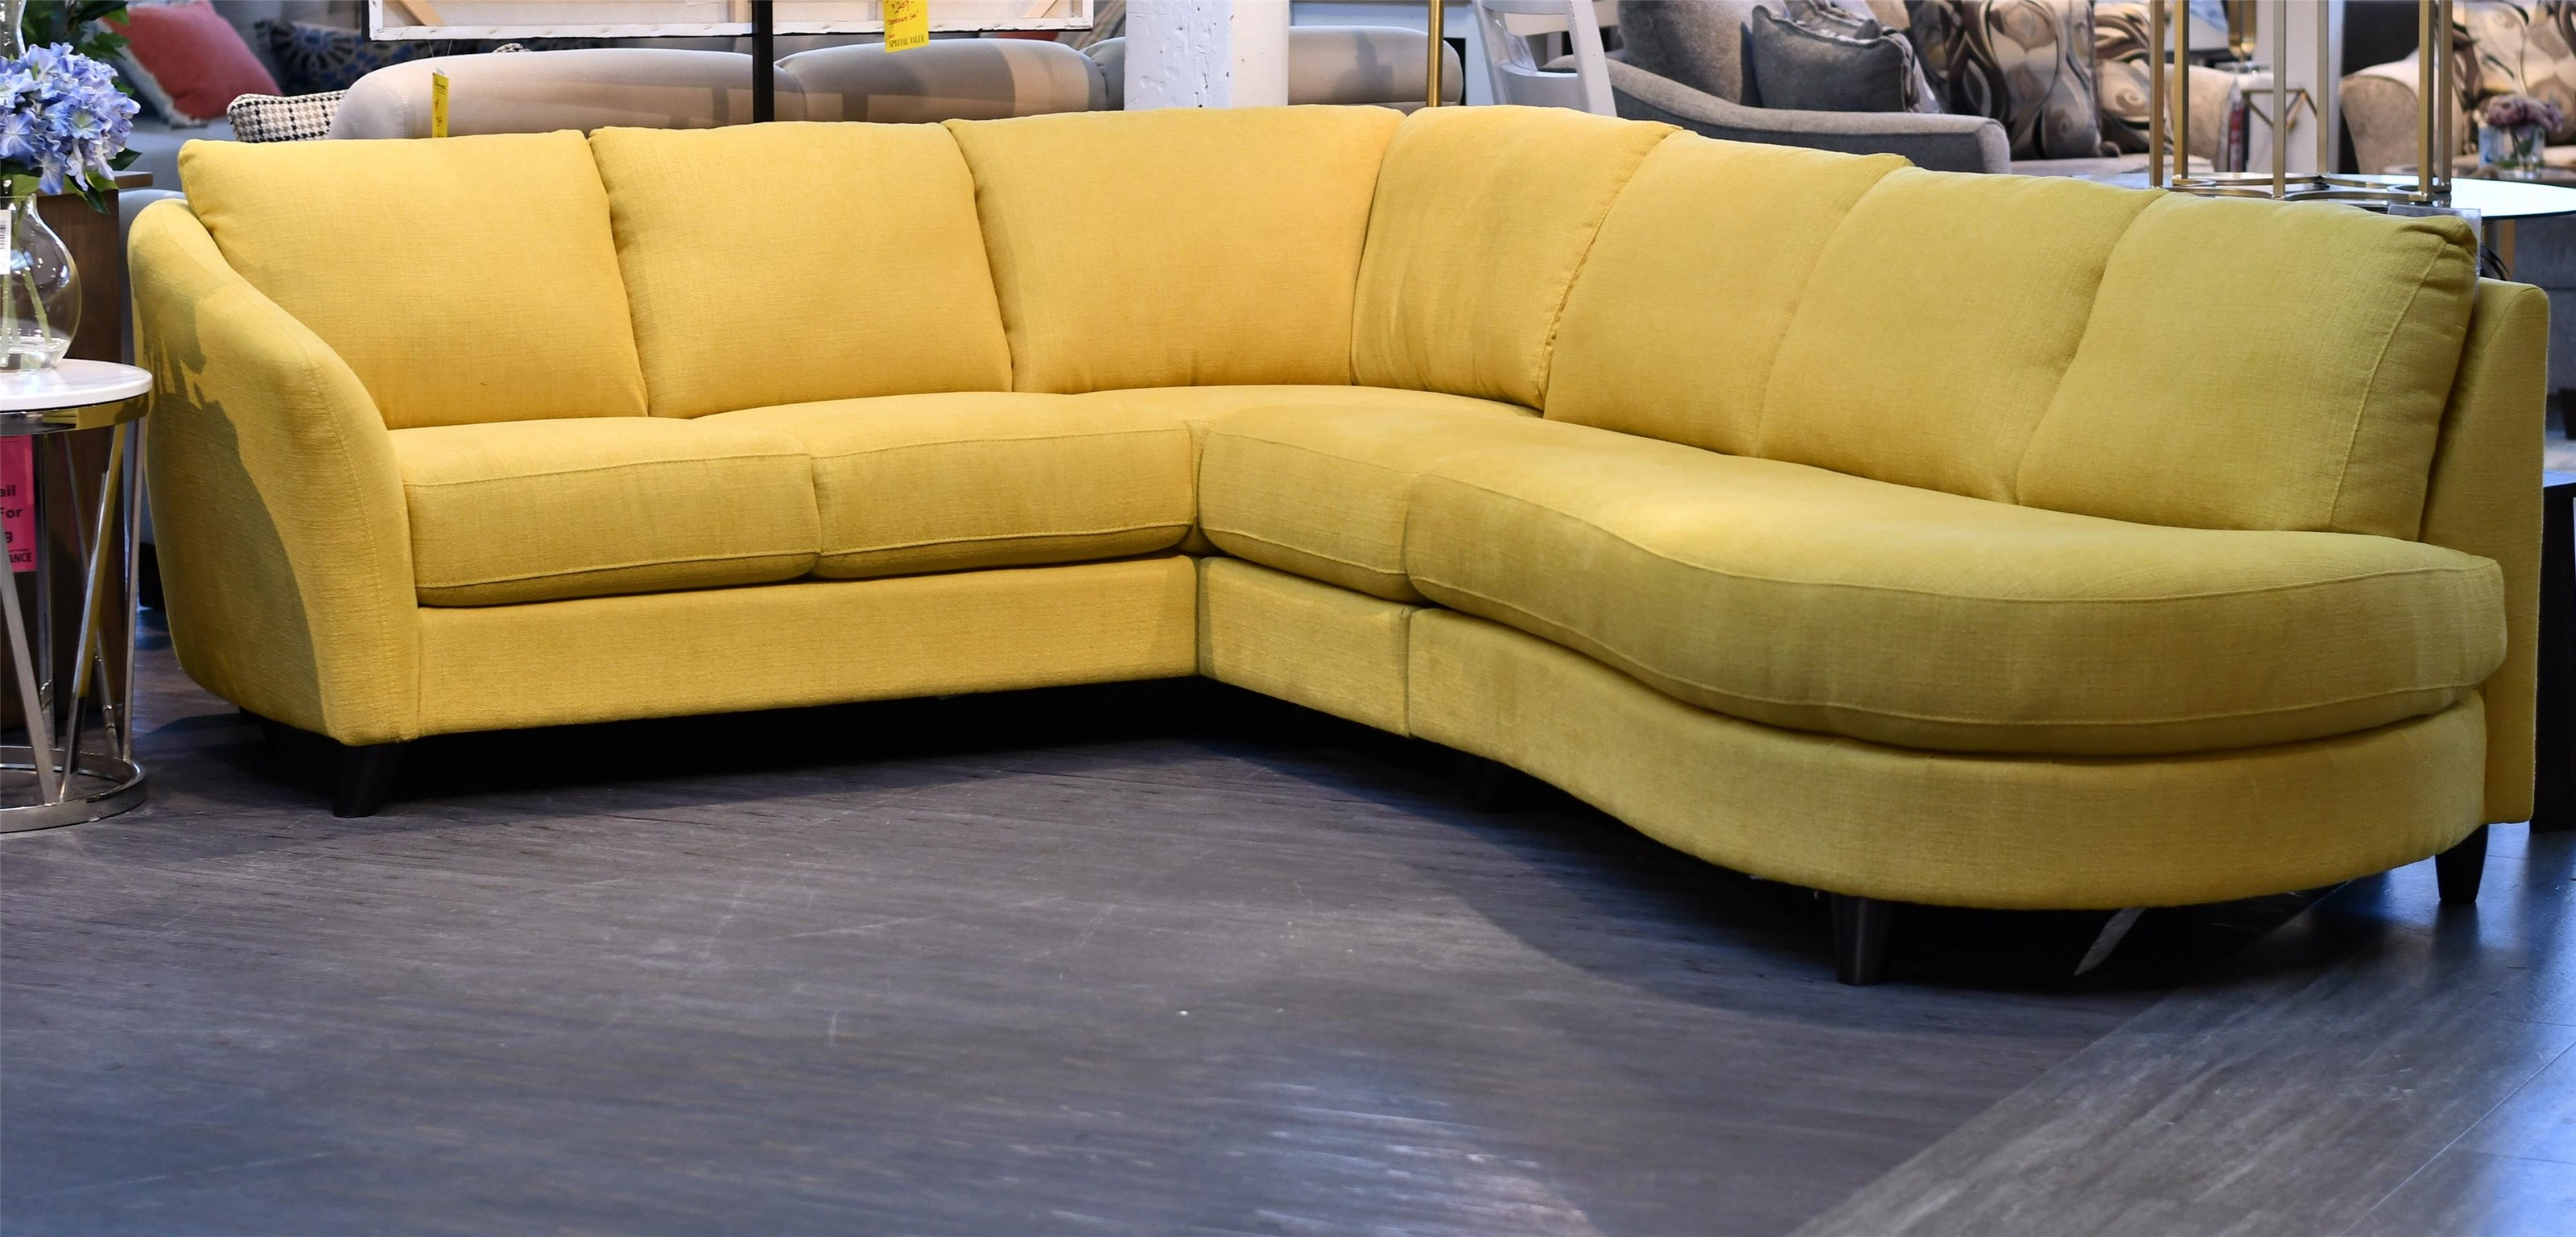 Lana Sectional Sofa by Rockwood at Bennett's Furniture and Mattresses